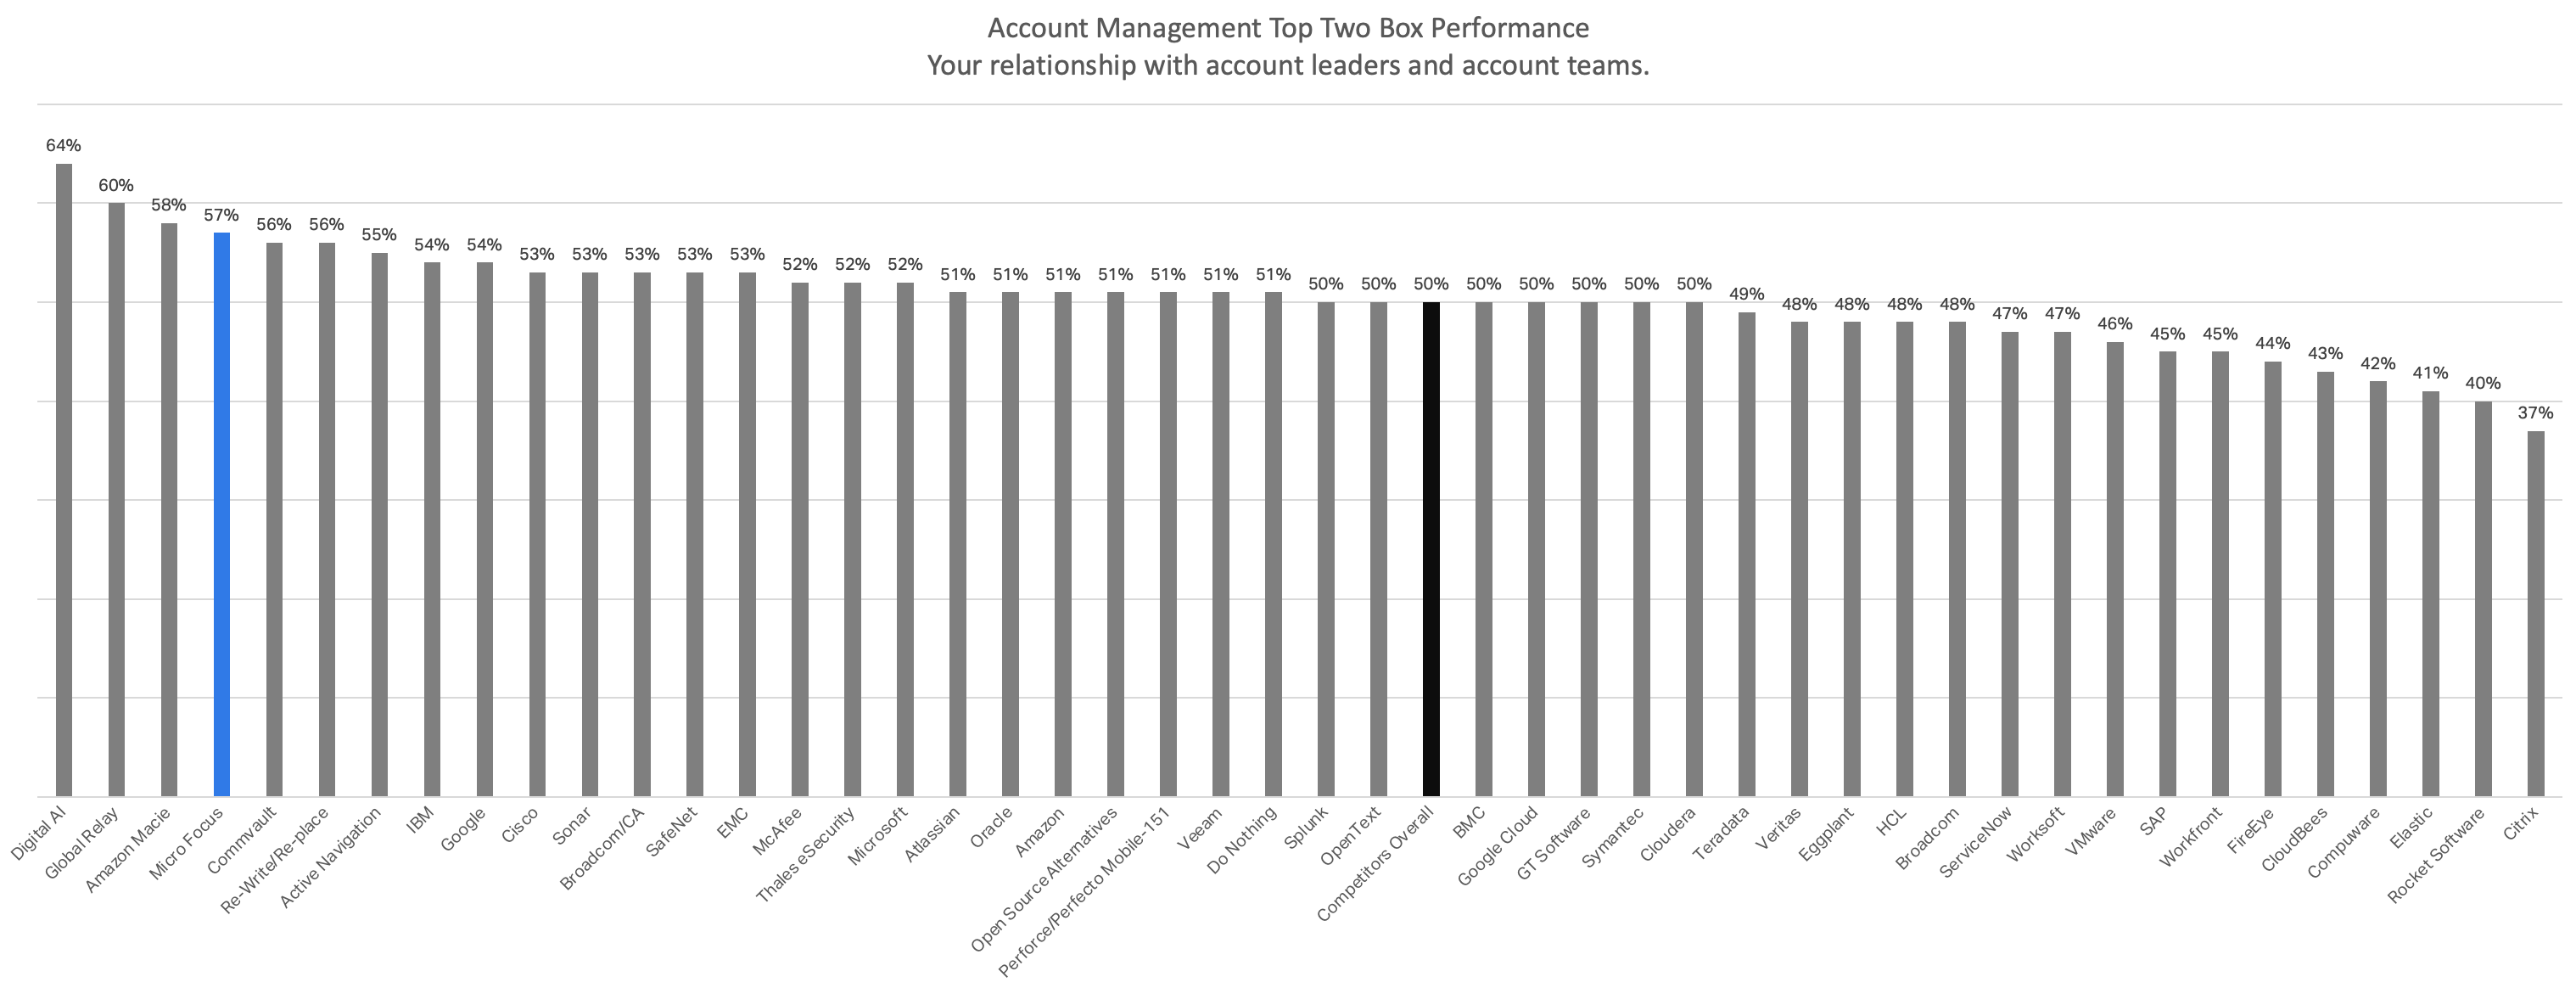 Micro Focus Account Management Performance Against the Competition